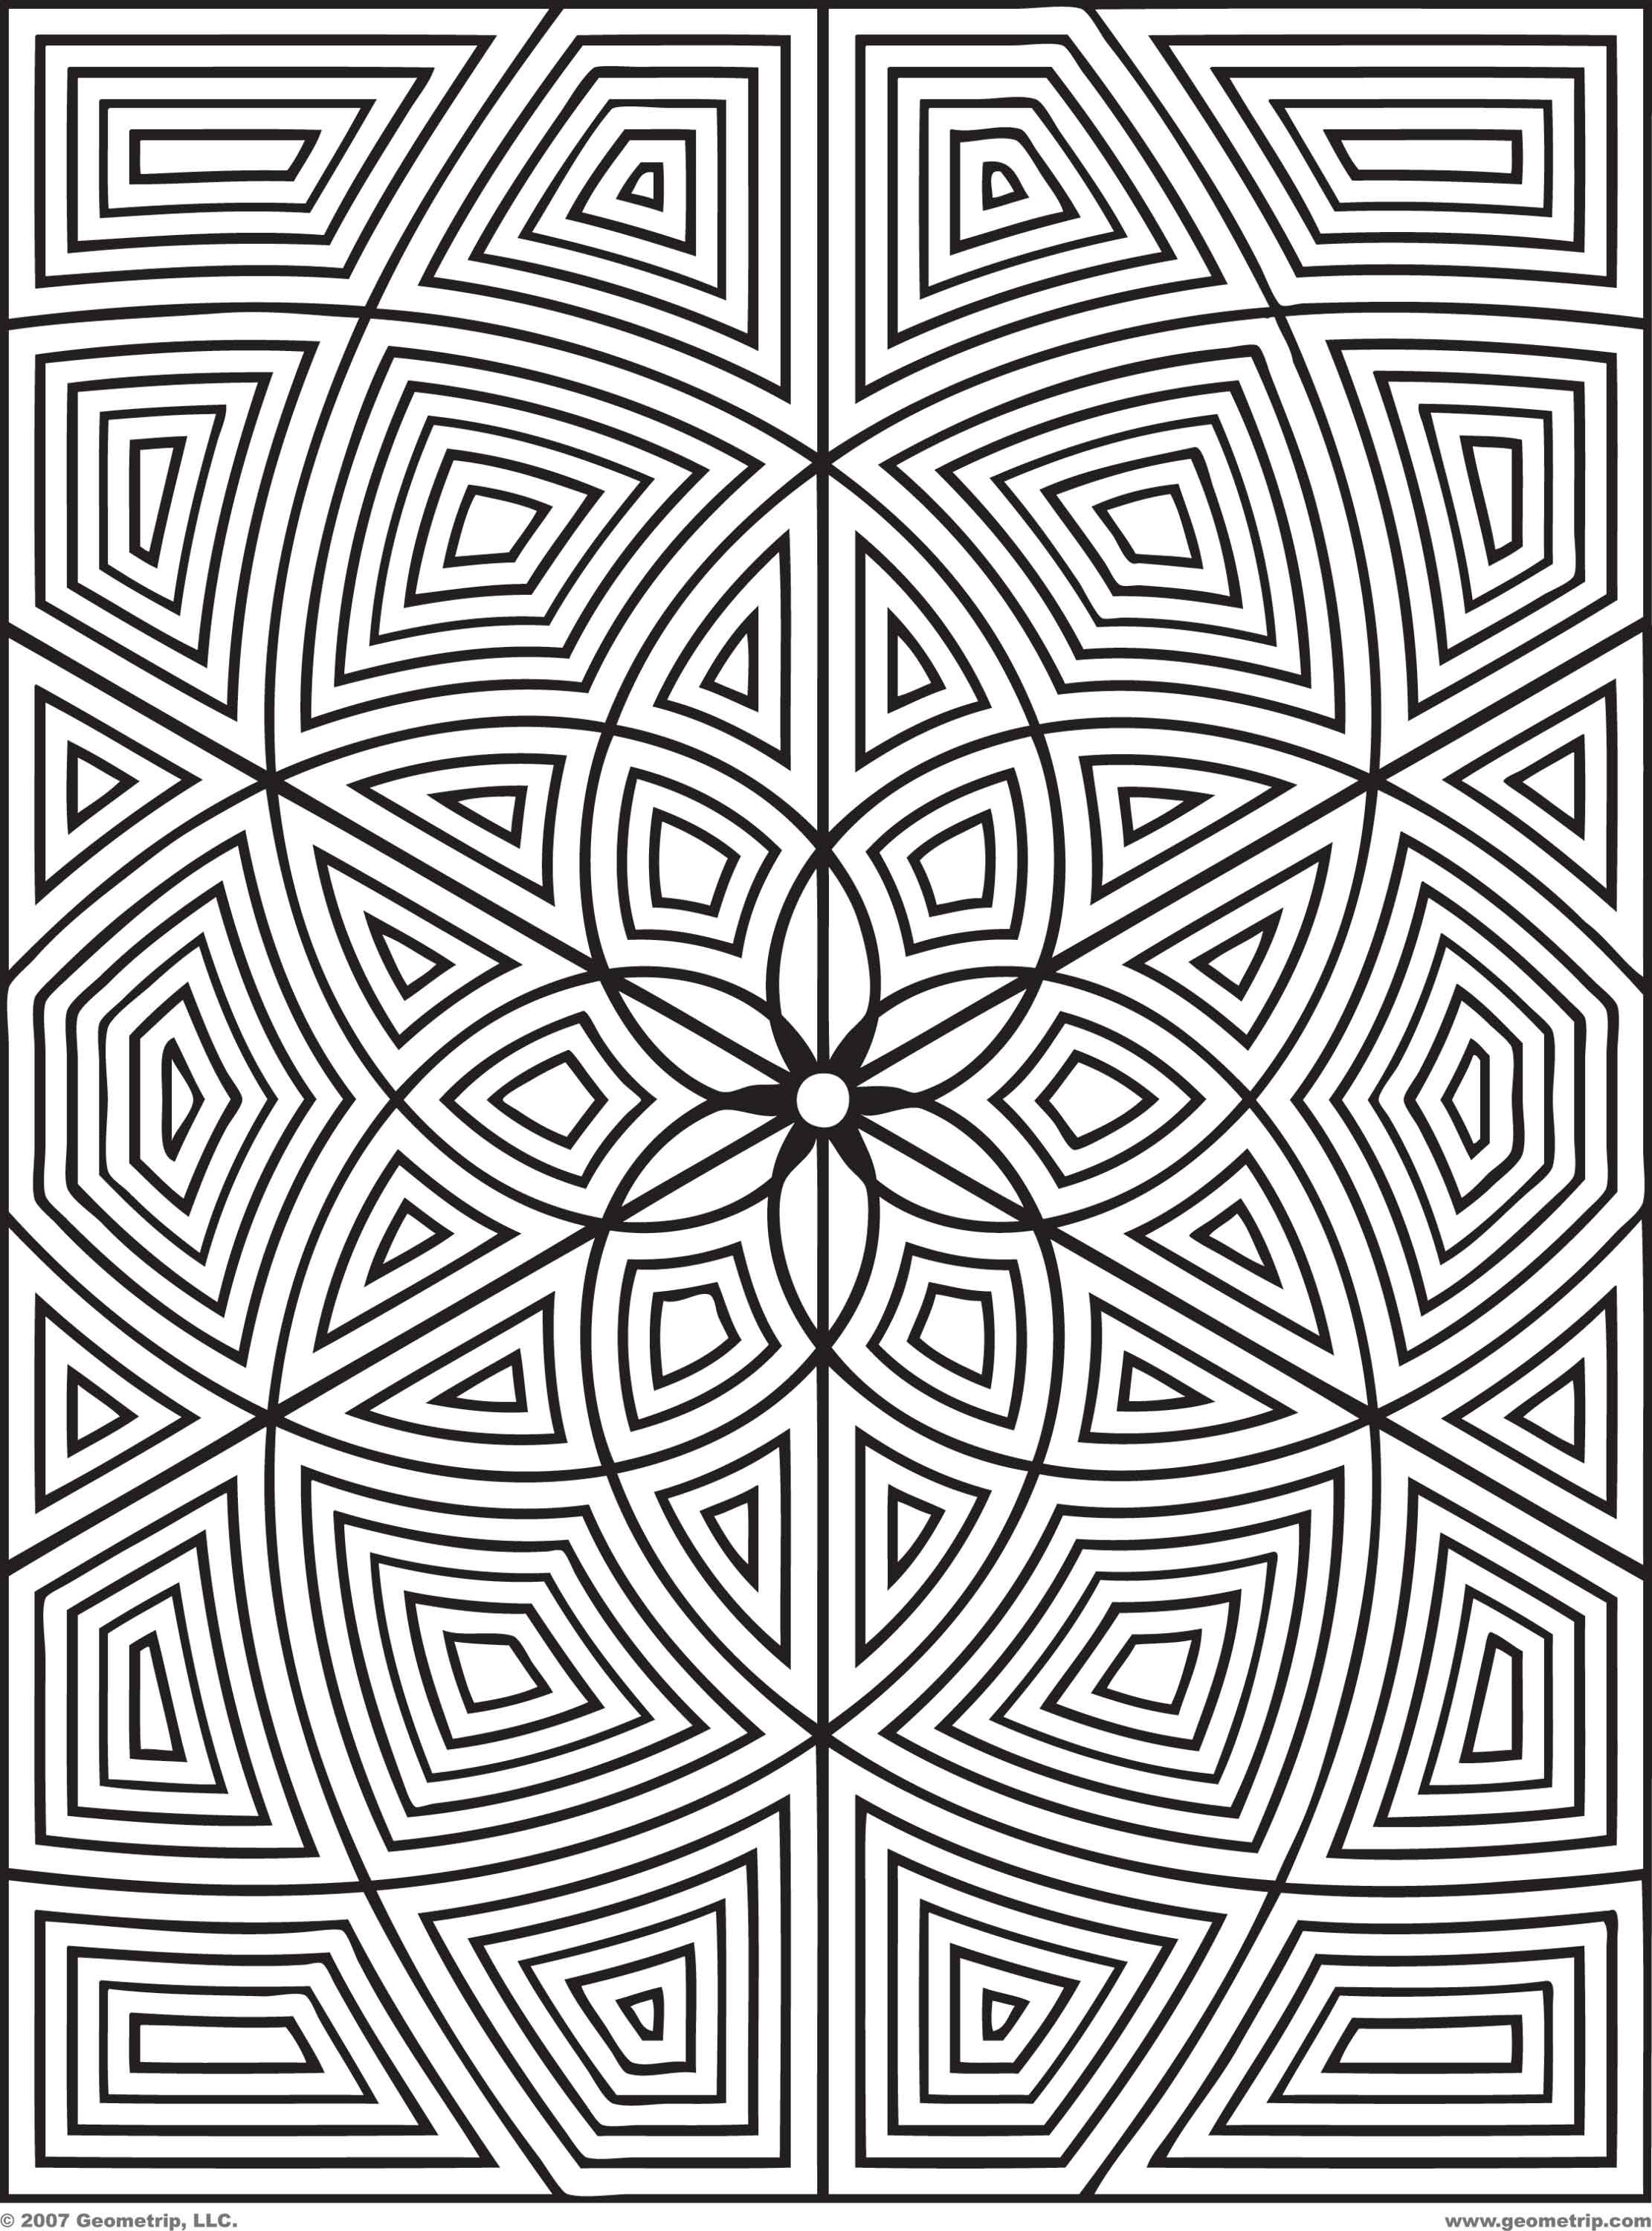 Geometric Coloring Pages For Adults Open Ms Paint* *select Paintbucket* *enjoy*  Paint Buckets